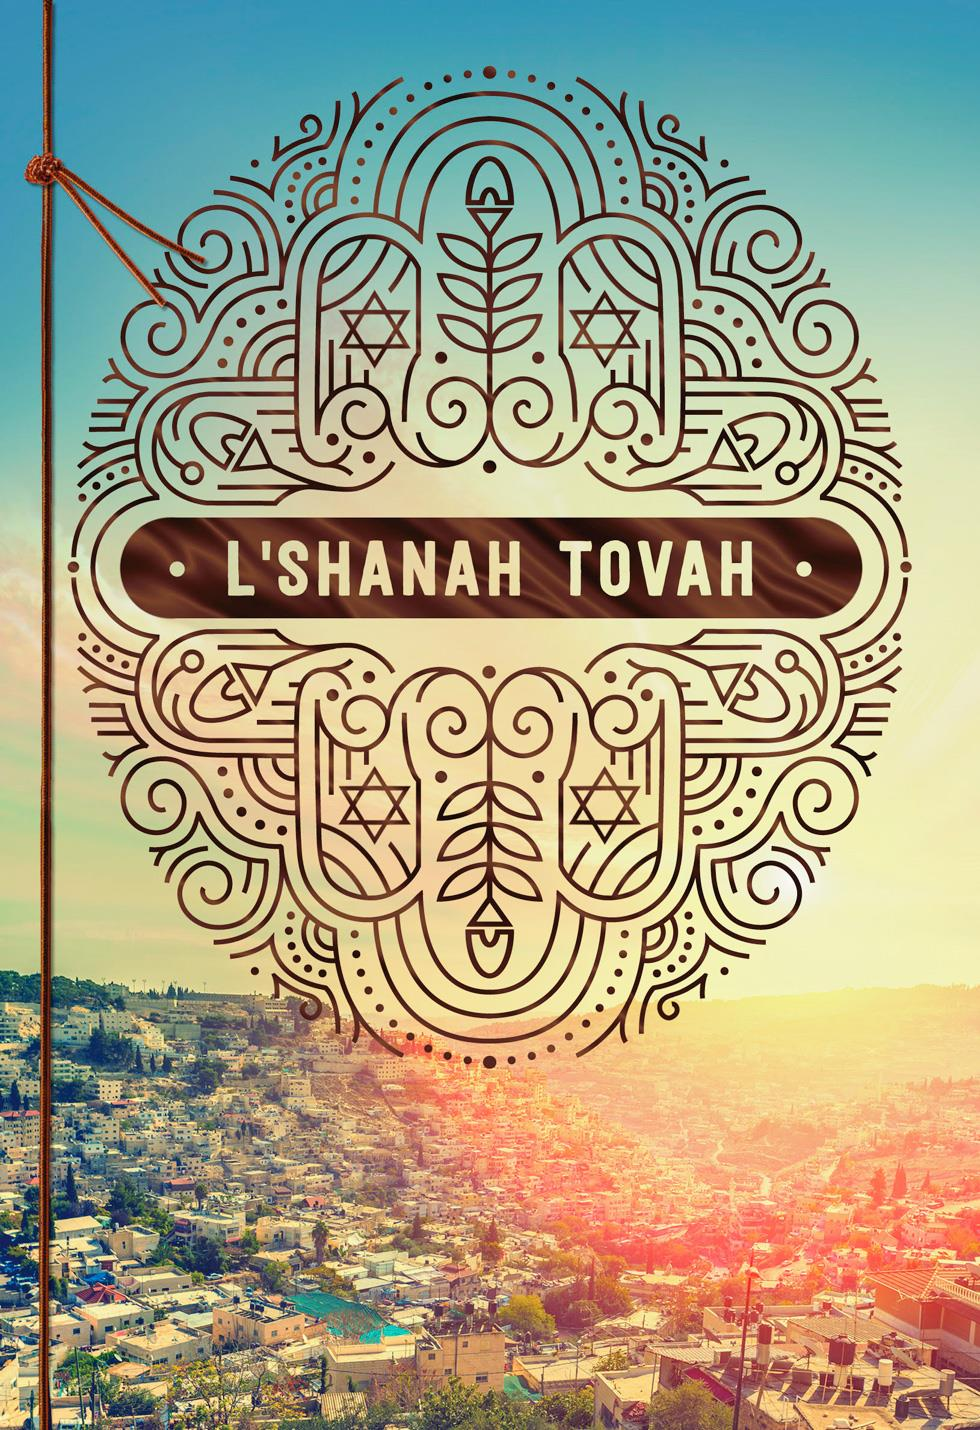 A Year Of Many Blessings Rosh Hashanah Card Greeting